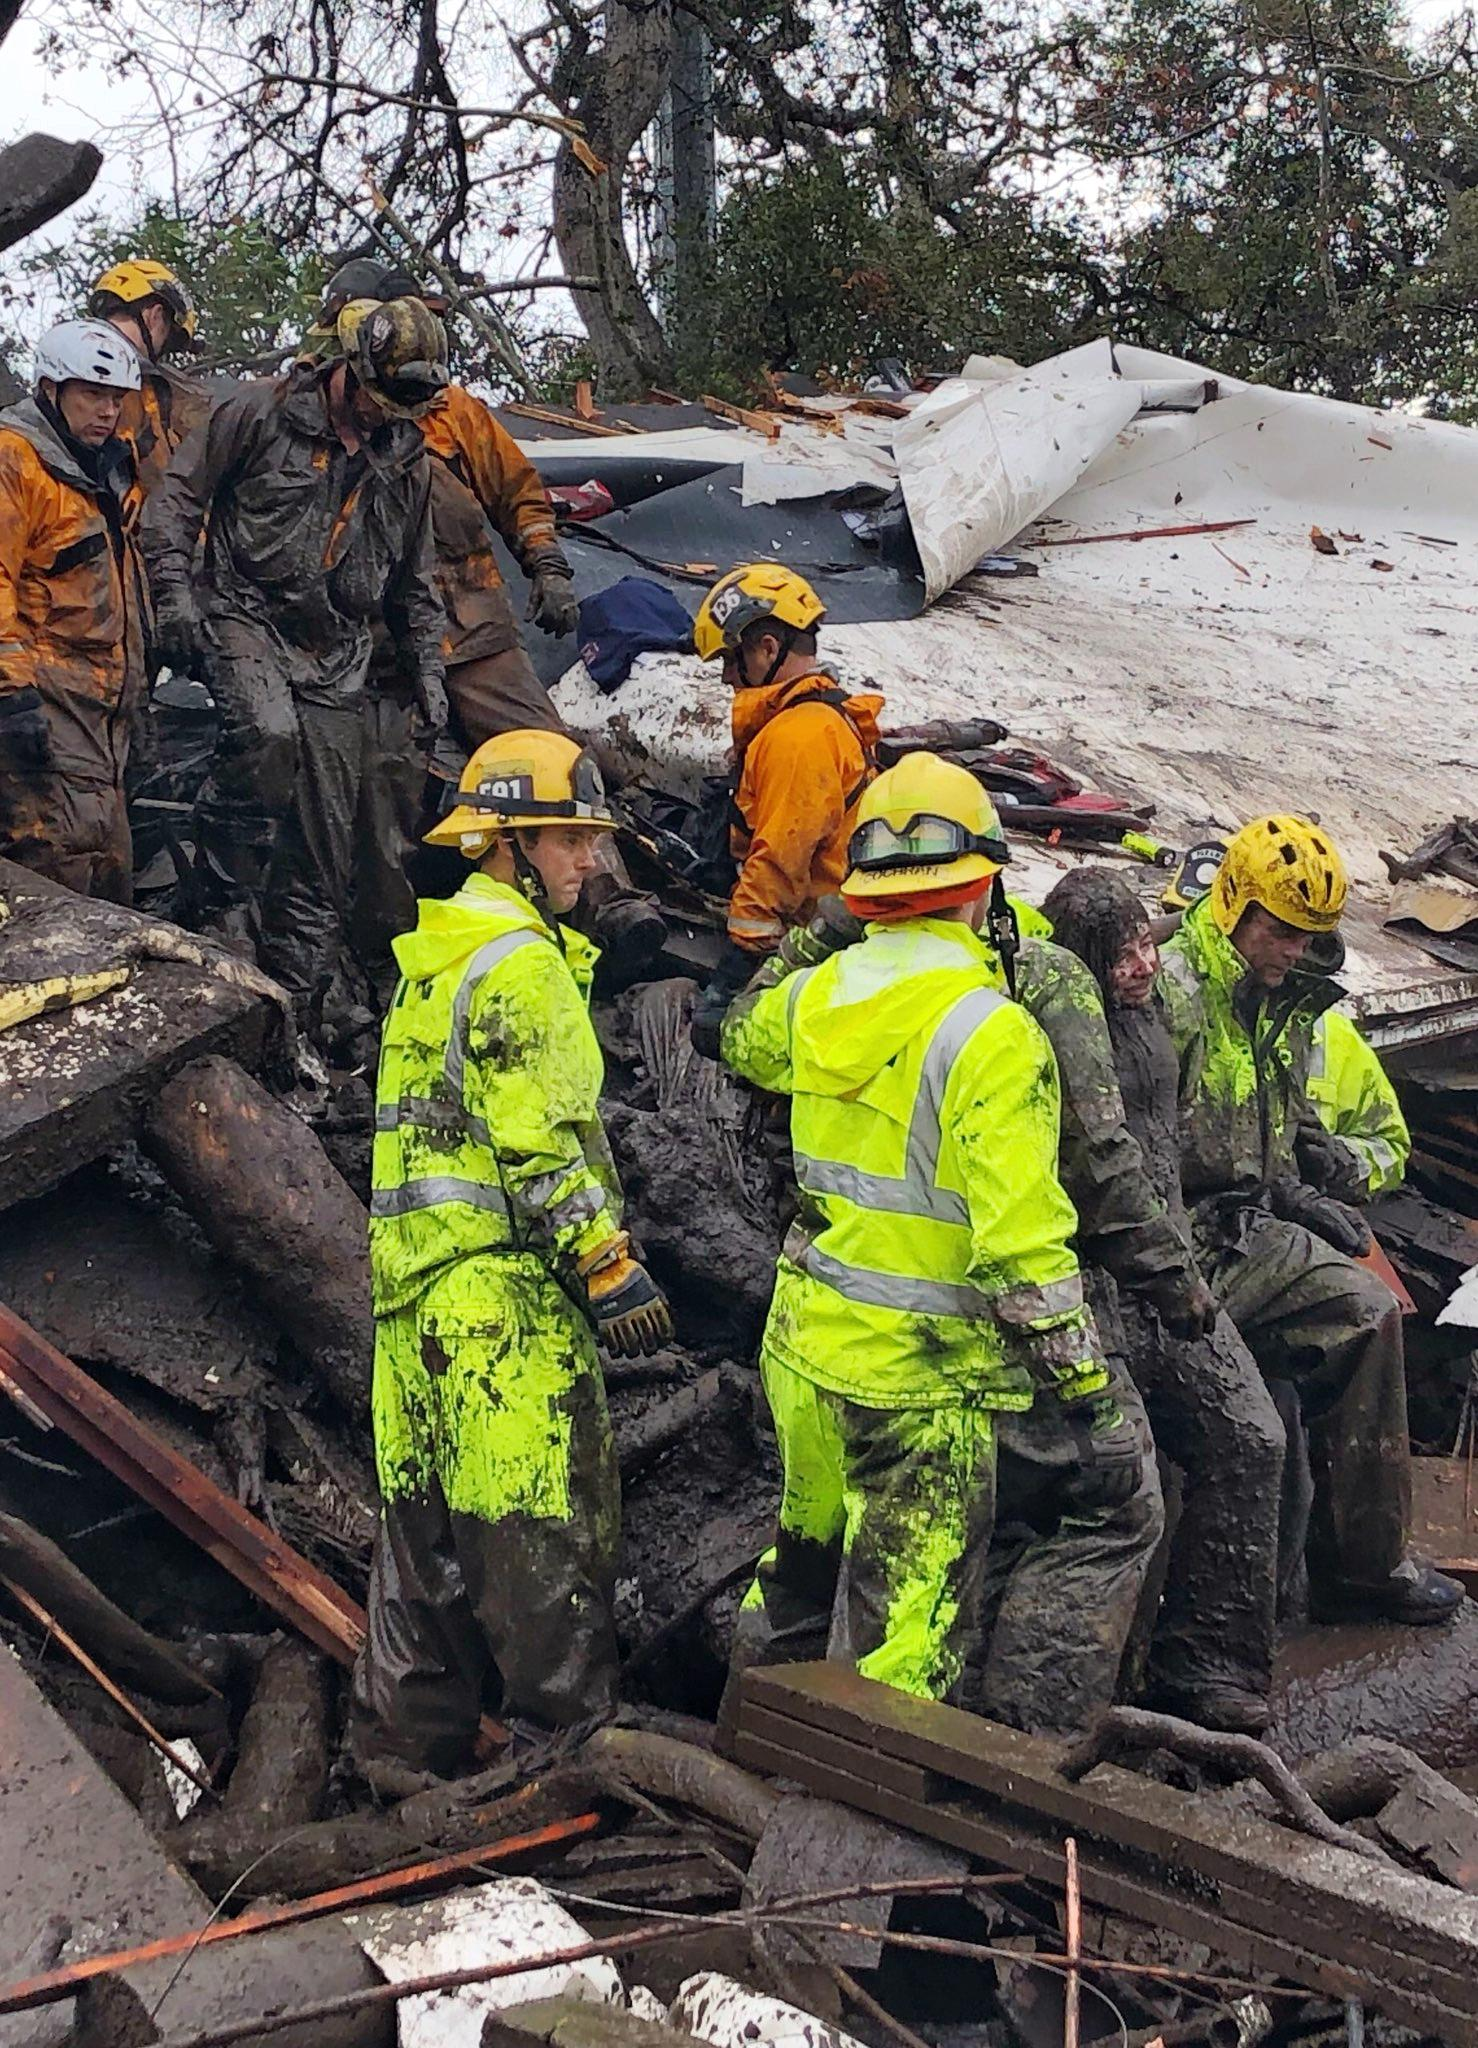 In this photo provided by Santa Barbara County Fire Department, firefighters successfully rescue a 14-year-old girl, right, after she was trapped for hours inside a destroyed home in Montecito, Calif., Tuesday, Jan. 9, 2018. Dozens of homes were swept away or heavily damaged and several people were killed Tuesday as downpours sent mud and boulders roaring down hills stripped of vegetation by a gigantic wildfire that raged in Southern California last month. (Mike Eliason/Santa Barbara County Fire Department via AP)